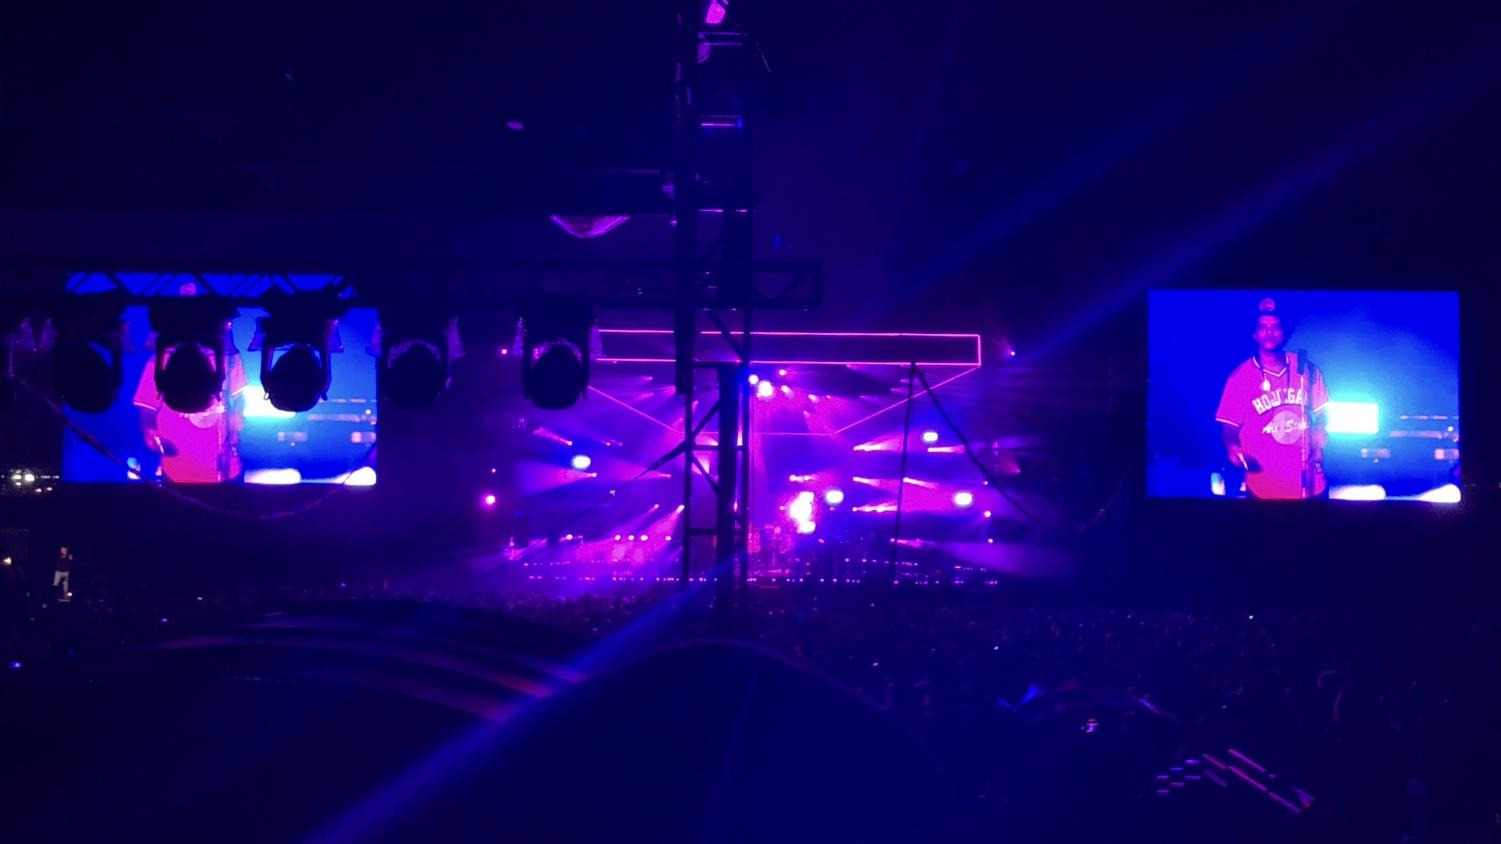 Bruno+Mars+performs+%E2%80%9CVersace+on+the+Floor%2C%E2%80%9D+which+pleases+the+crowd+and+makes+people+start+to+dance.